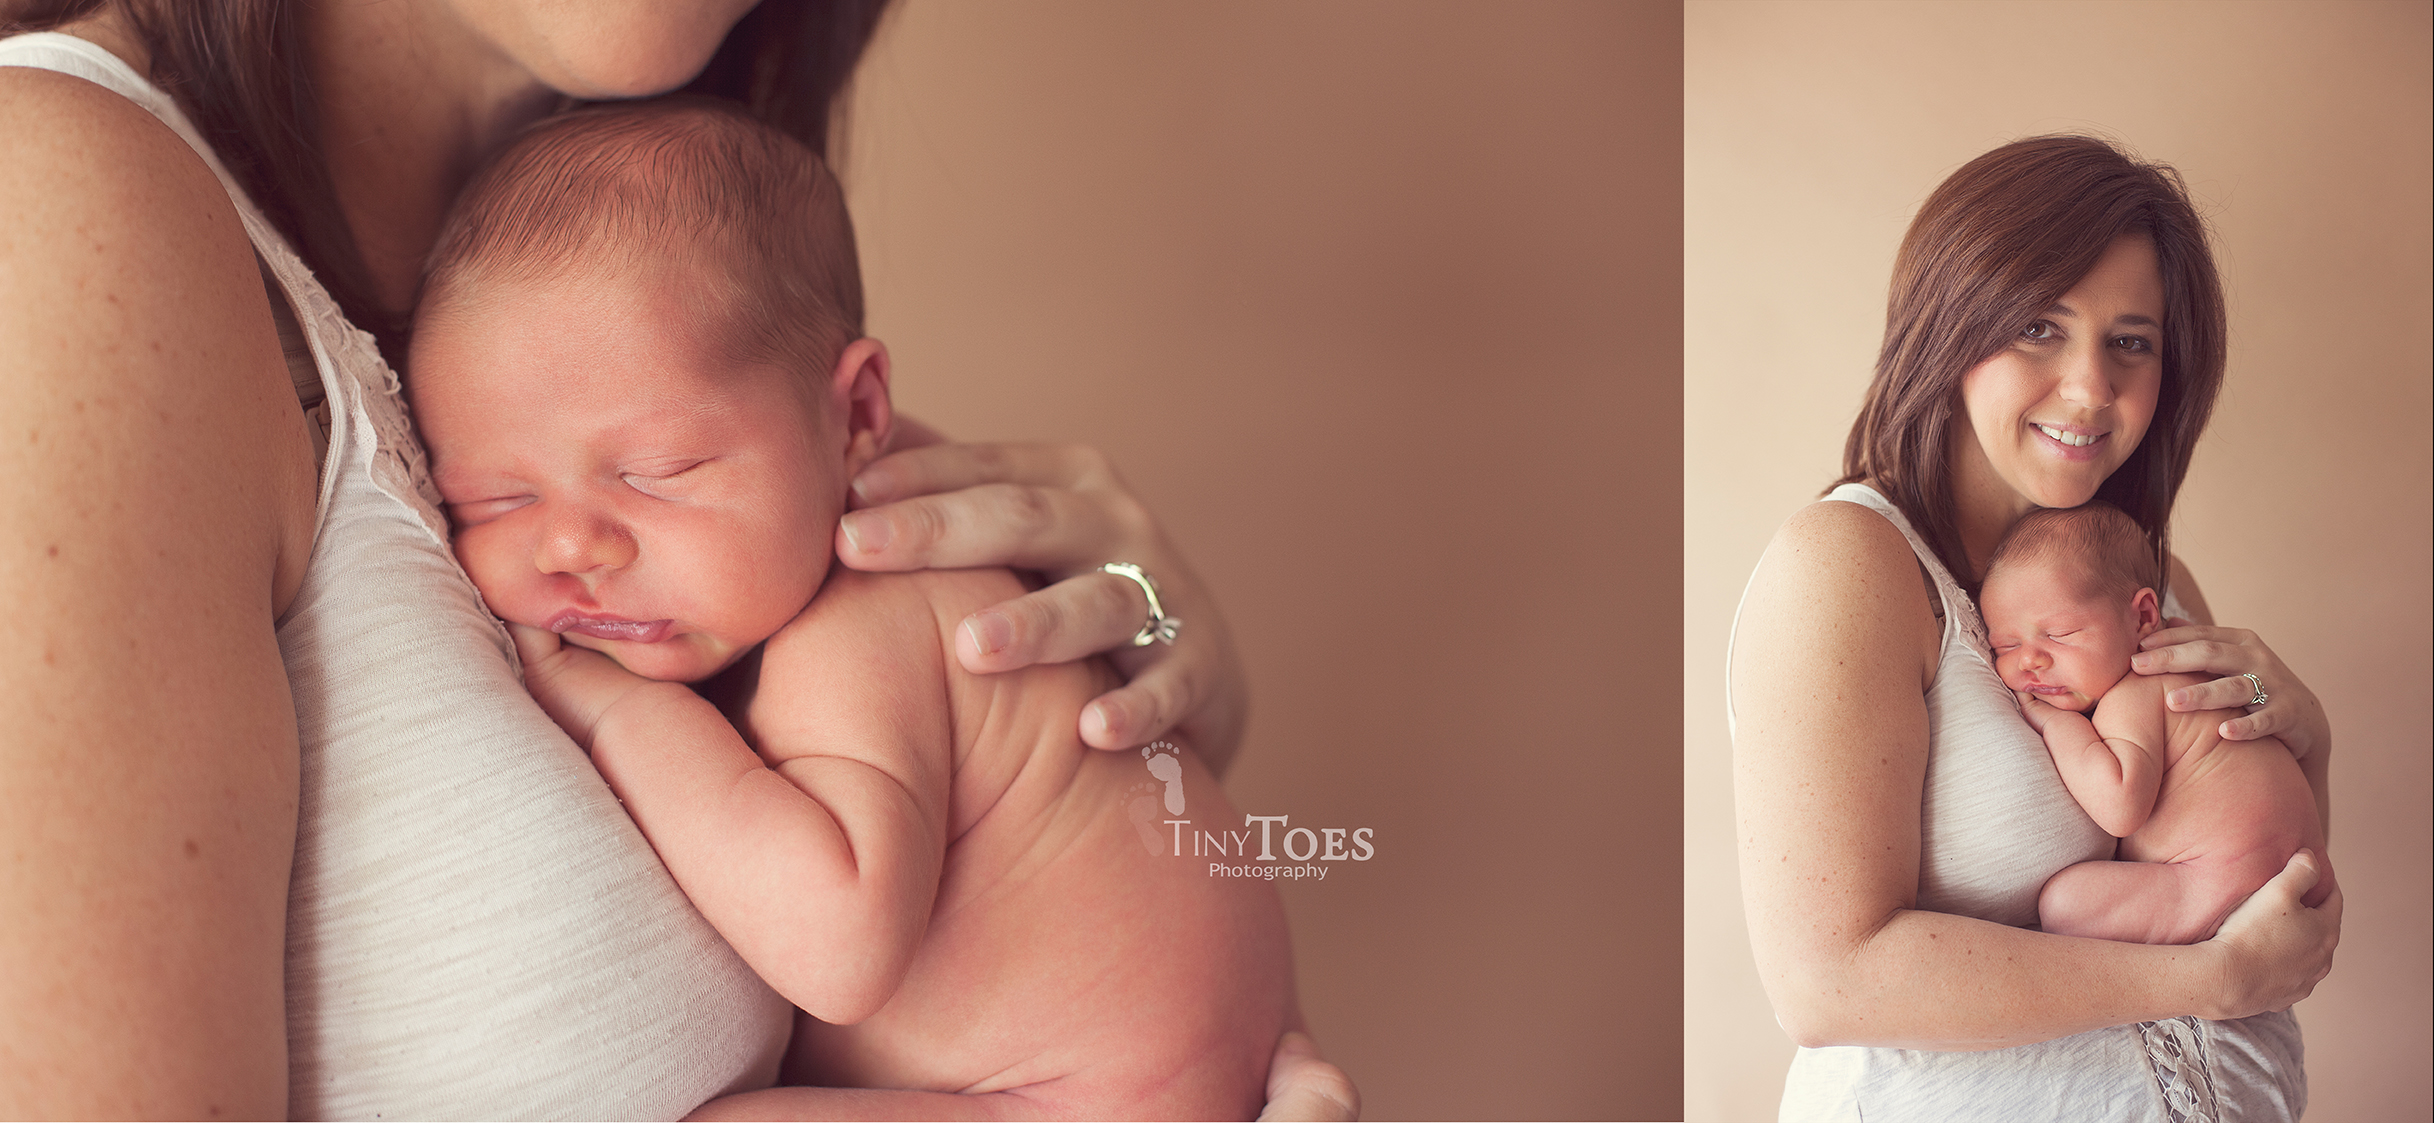 Newborn Photography |  Tiny Toes Photography, Nassau Bahamas